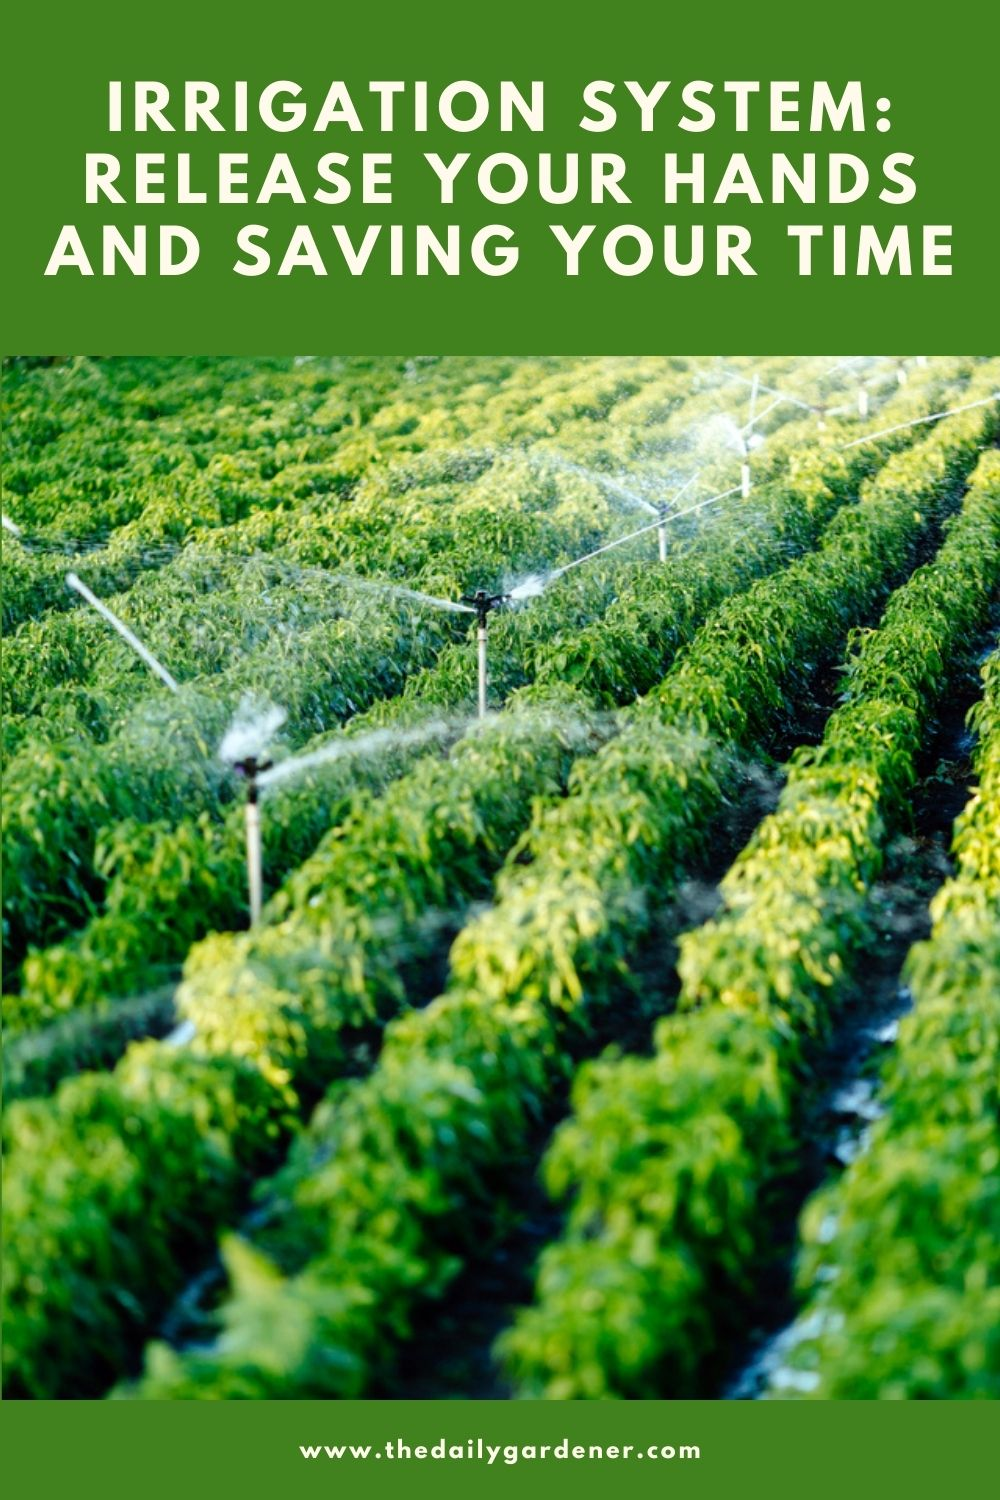 Irrigation System Release Your Hands and Saving Your time 1